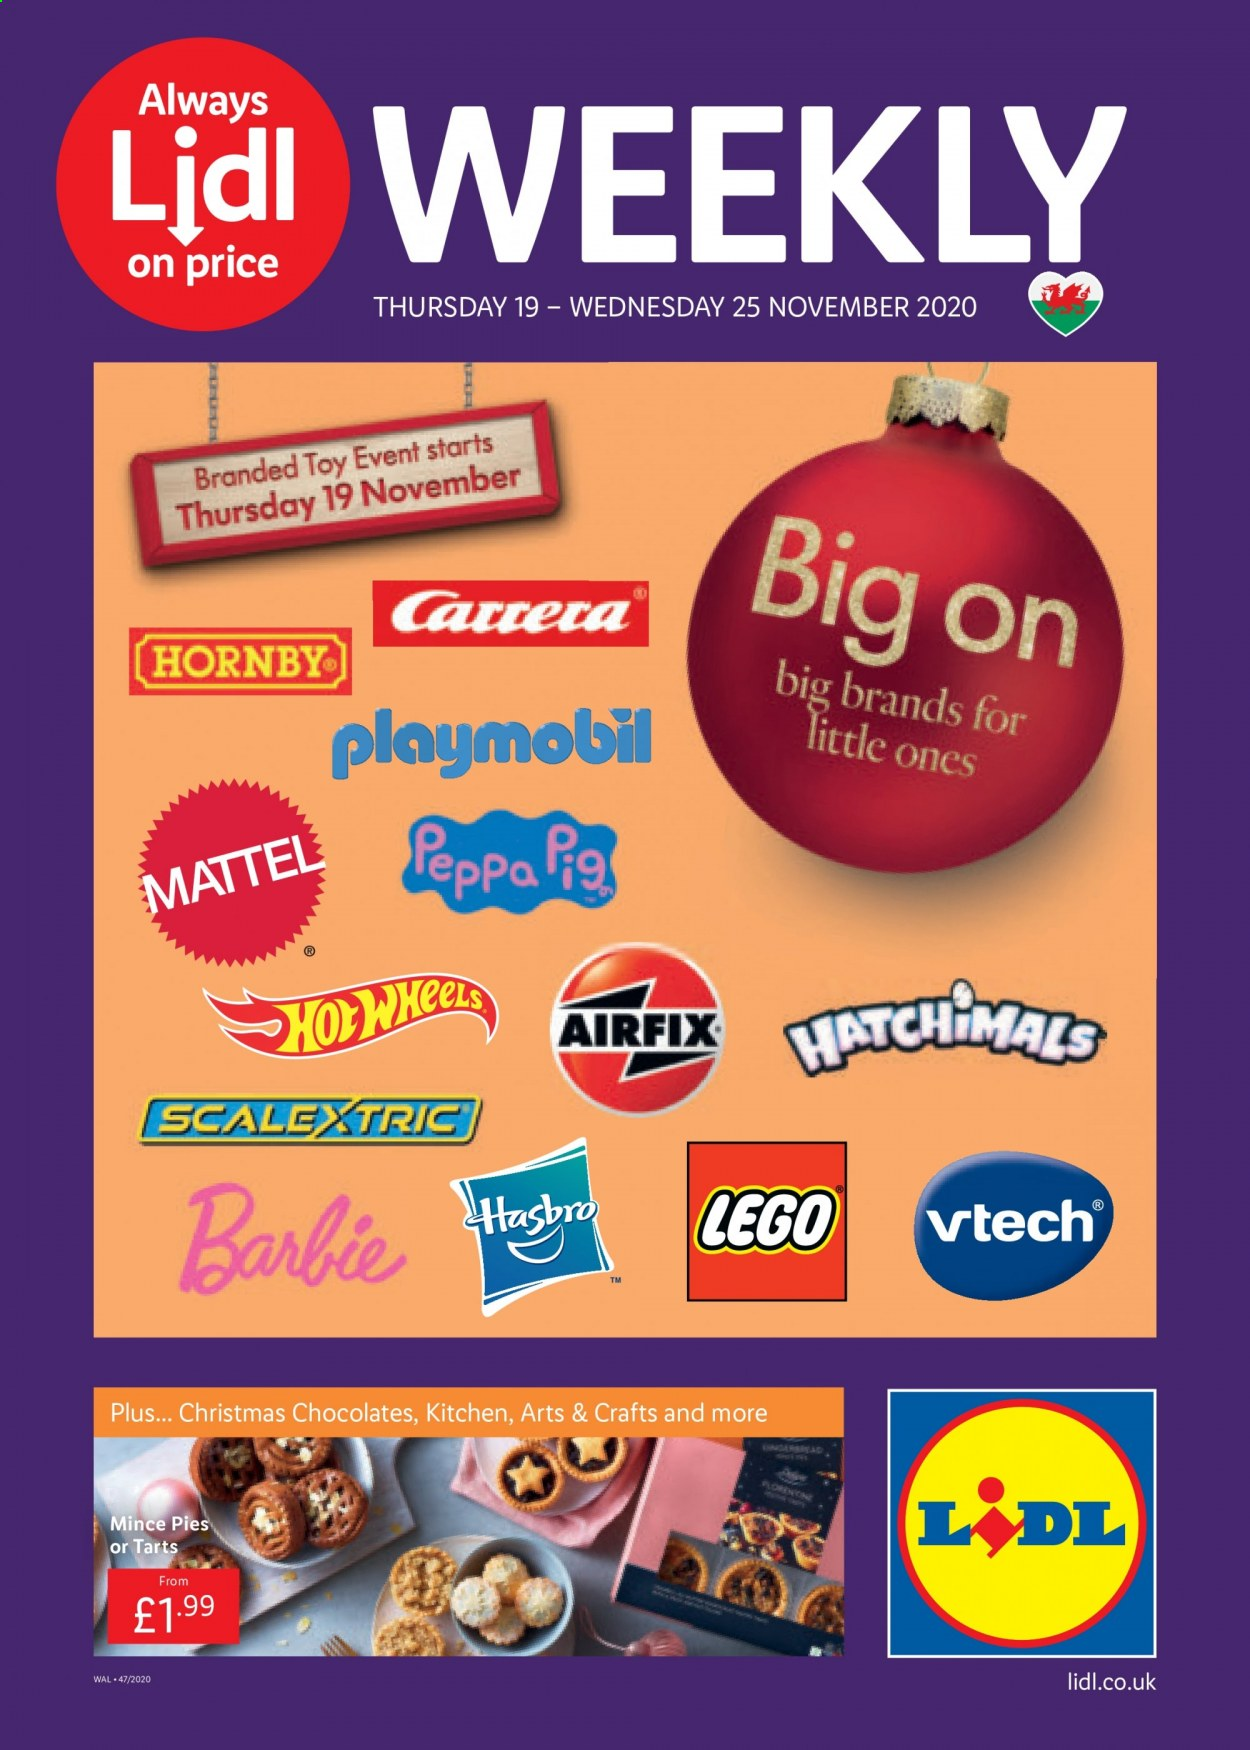 Lidl offer  - 19.11.2020 - 25.11.2020 - Sales products - always, barbie, lego, mattel, vtech, kitchen, playmobil, hasbro, carrera, toys, hatchimals, scalextric. Page 1.